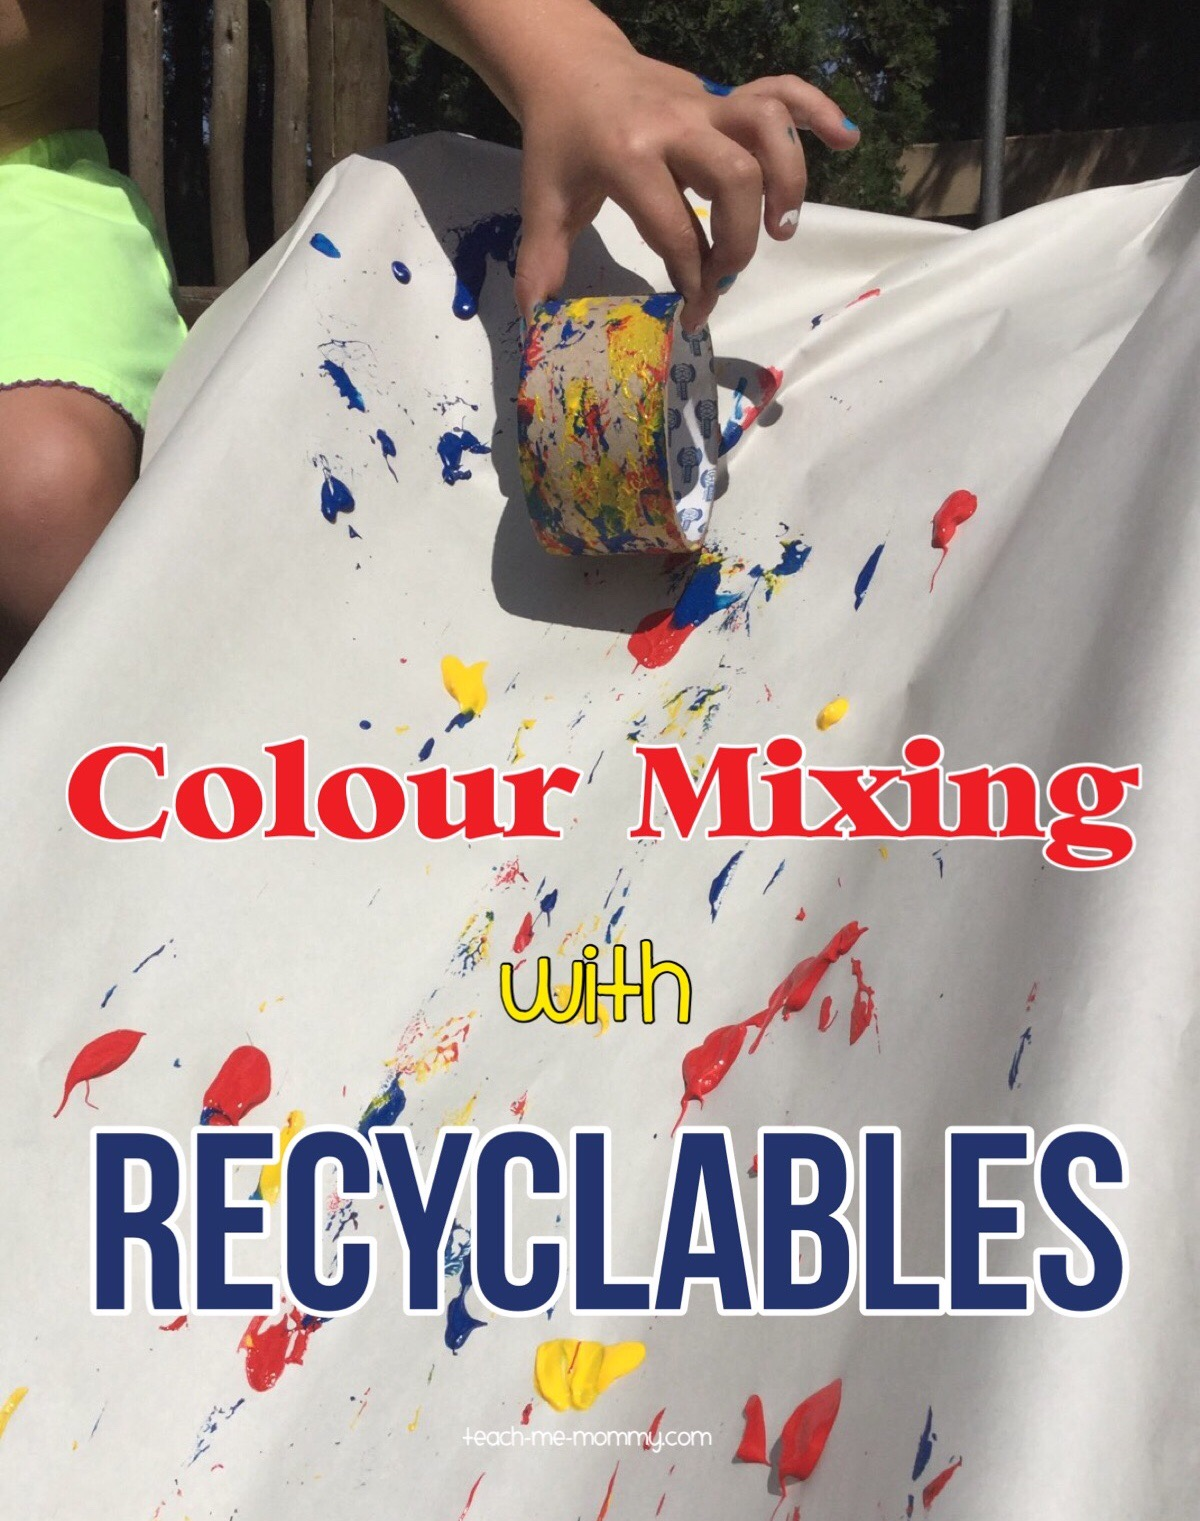 Colour Mixing with Recyclables